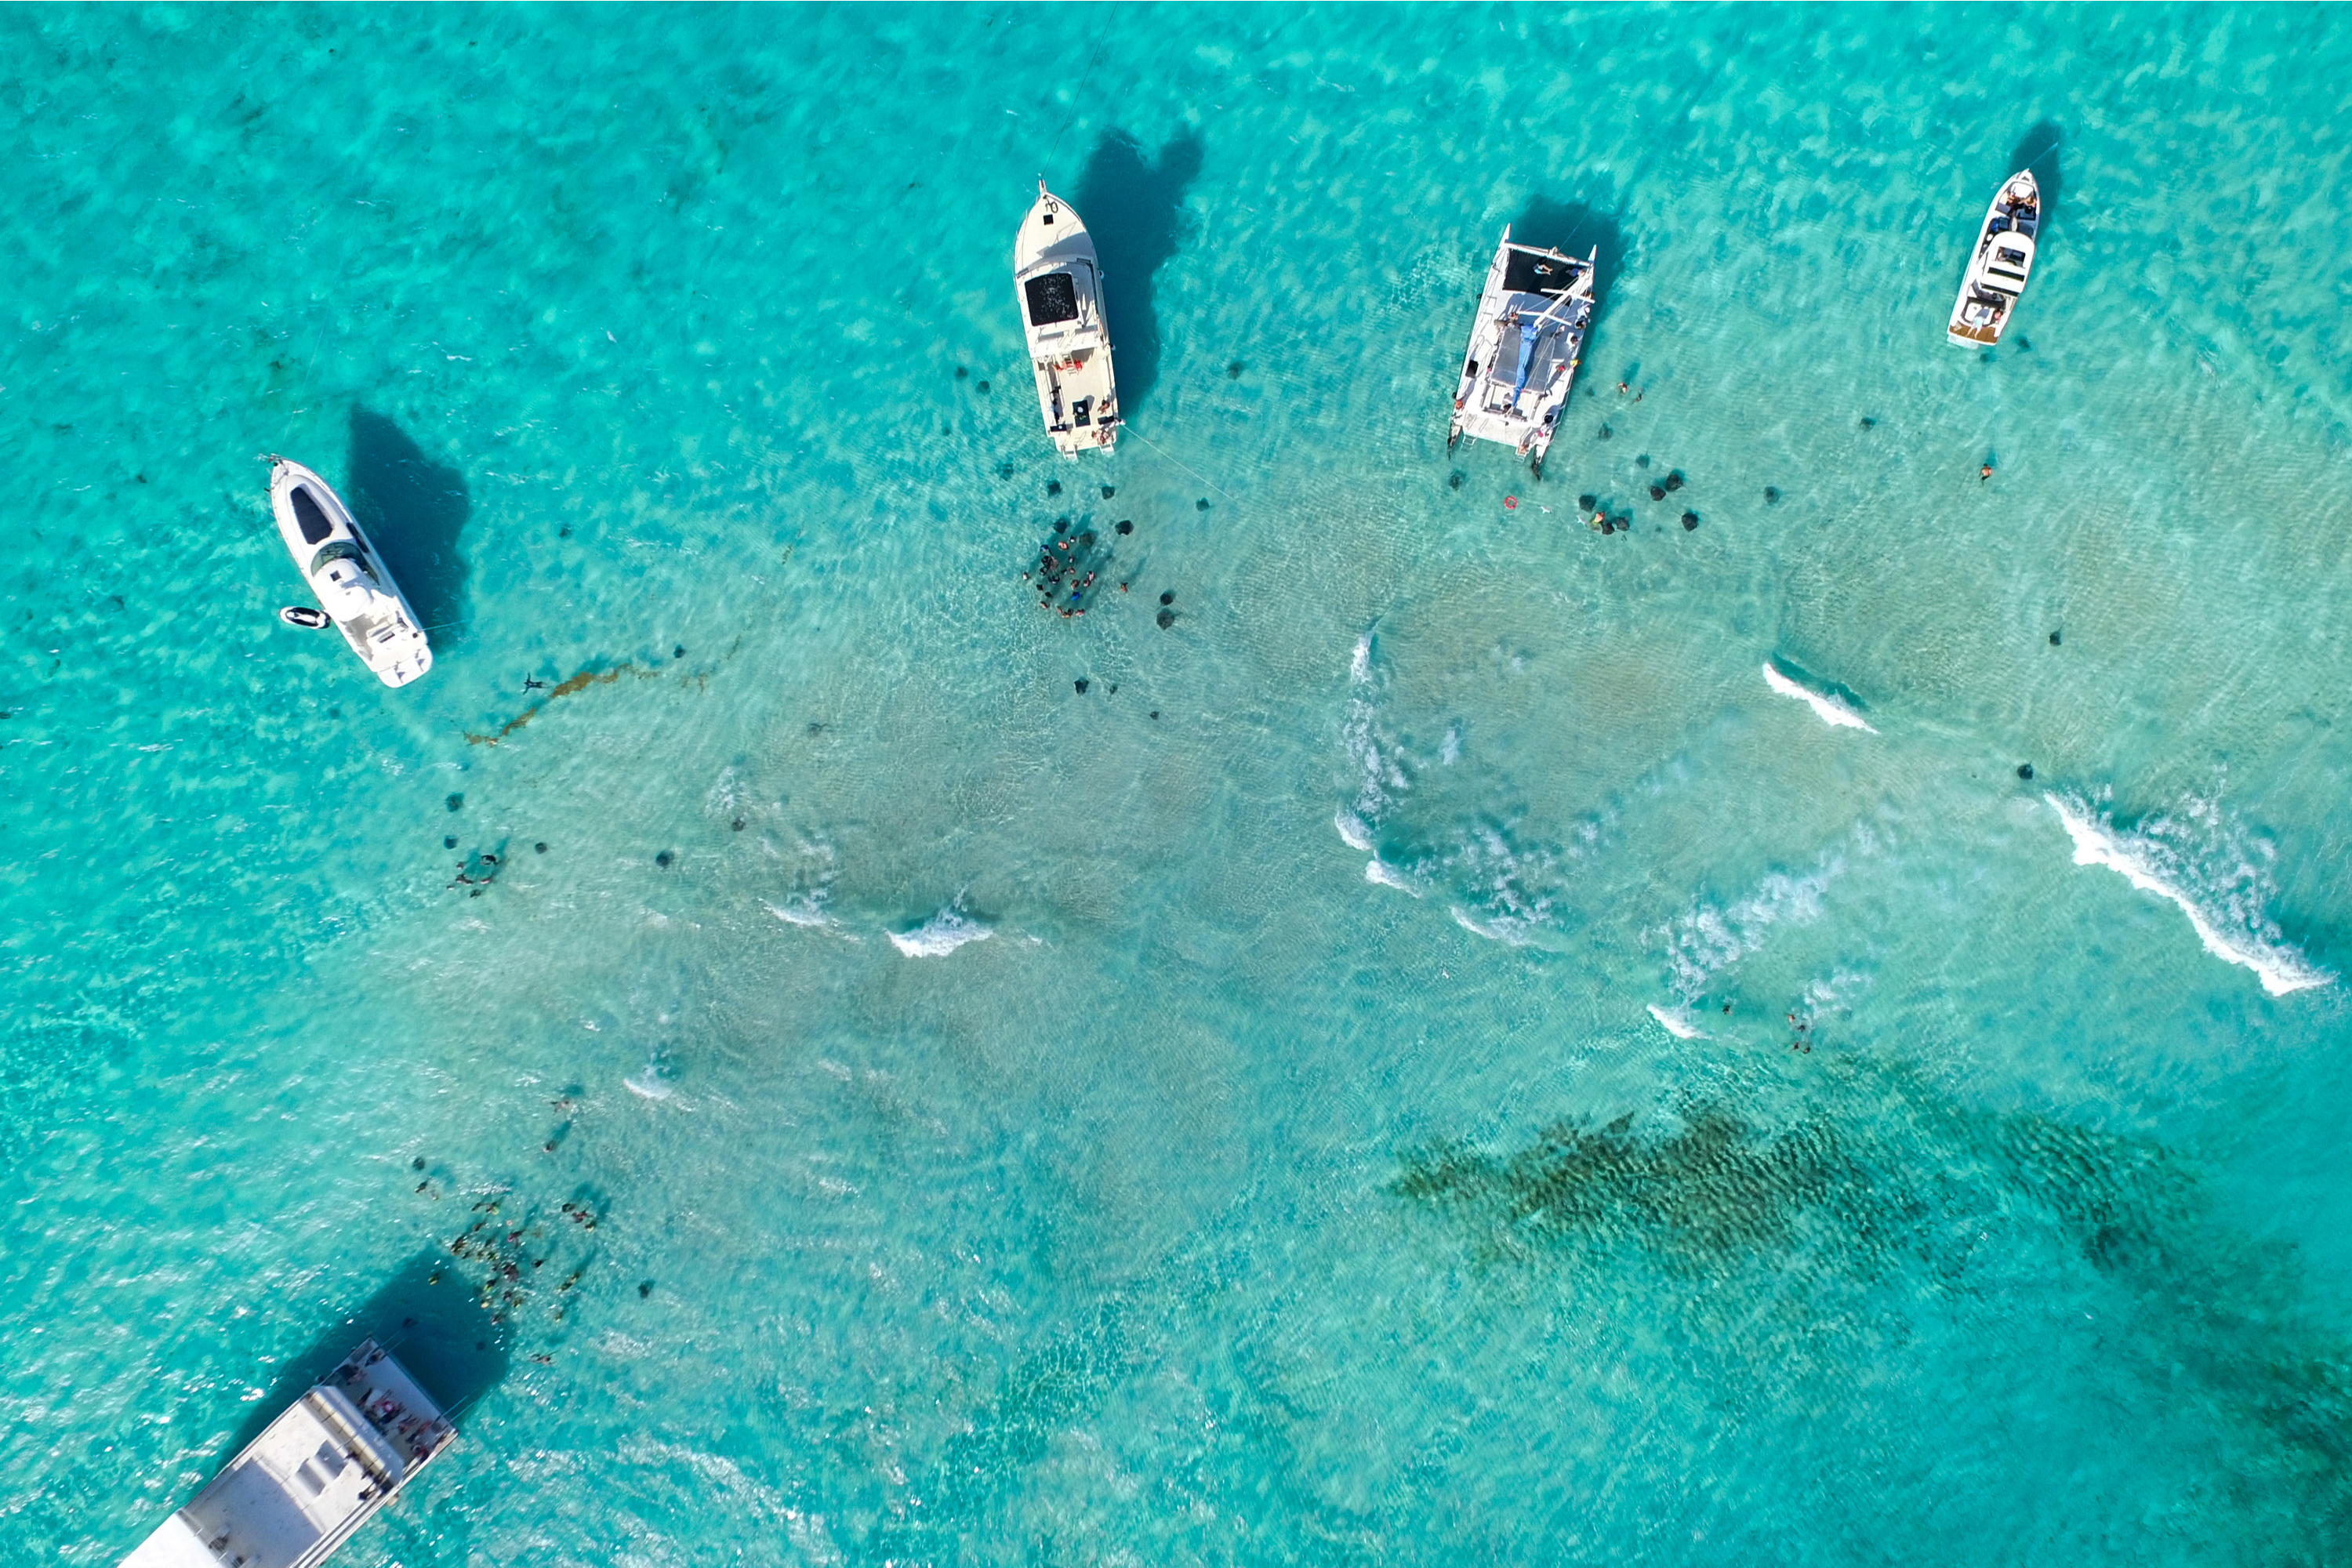 Are you planning your next vacation? Consider going to the Cayman Islands! Here's everything you need to know about why it should be at the top of your list!